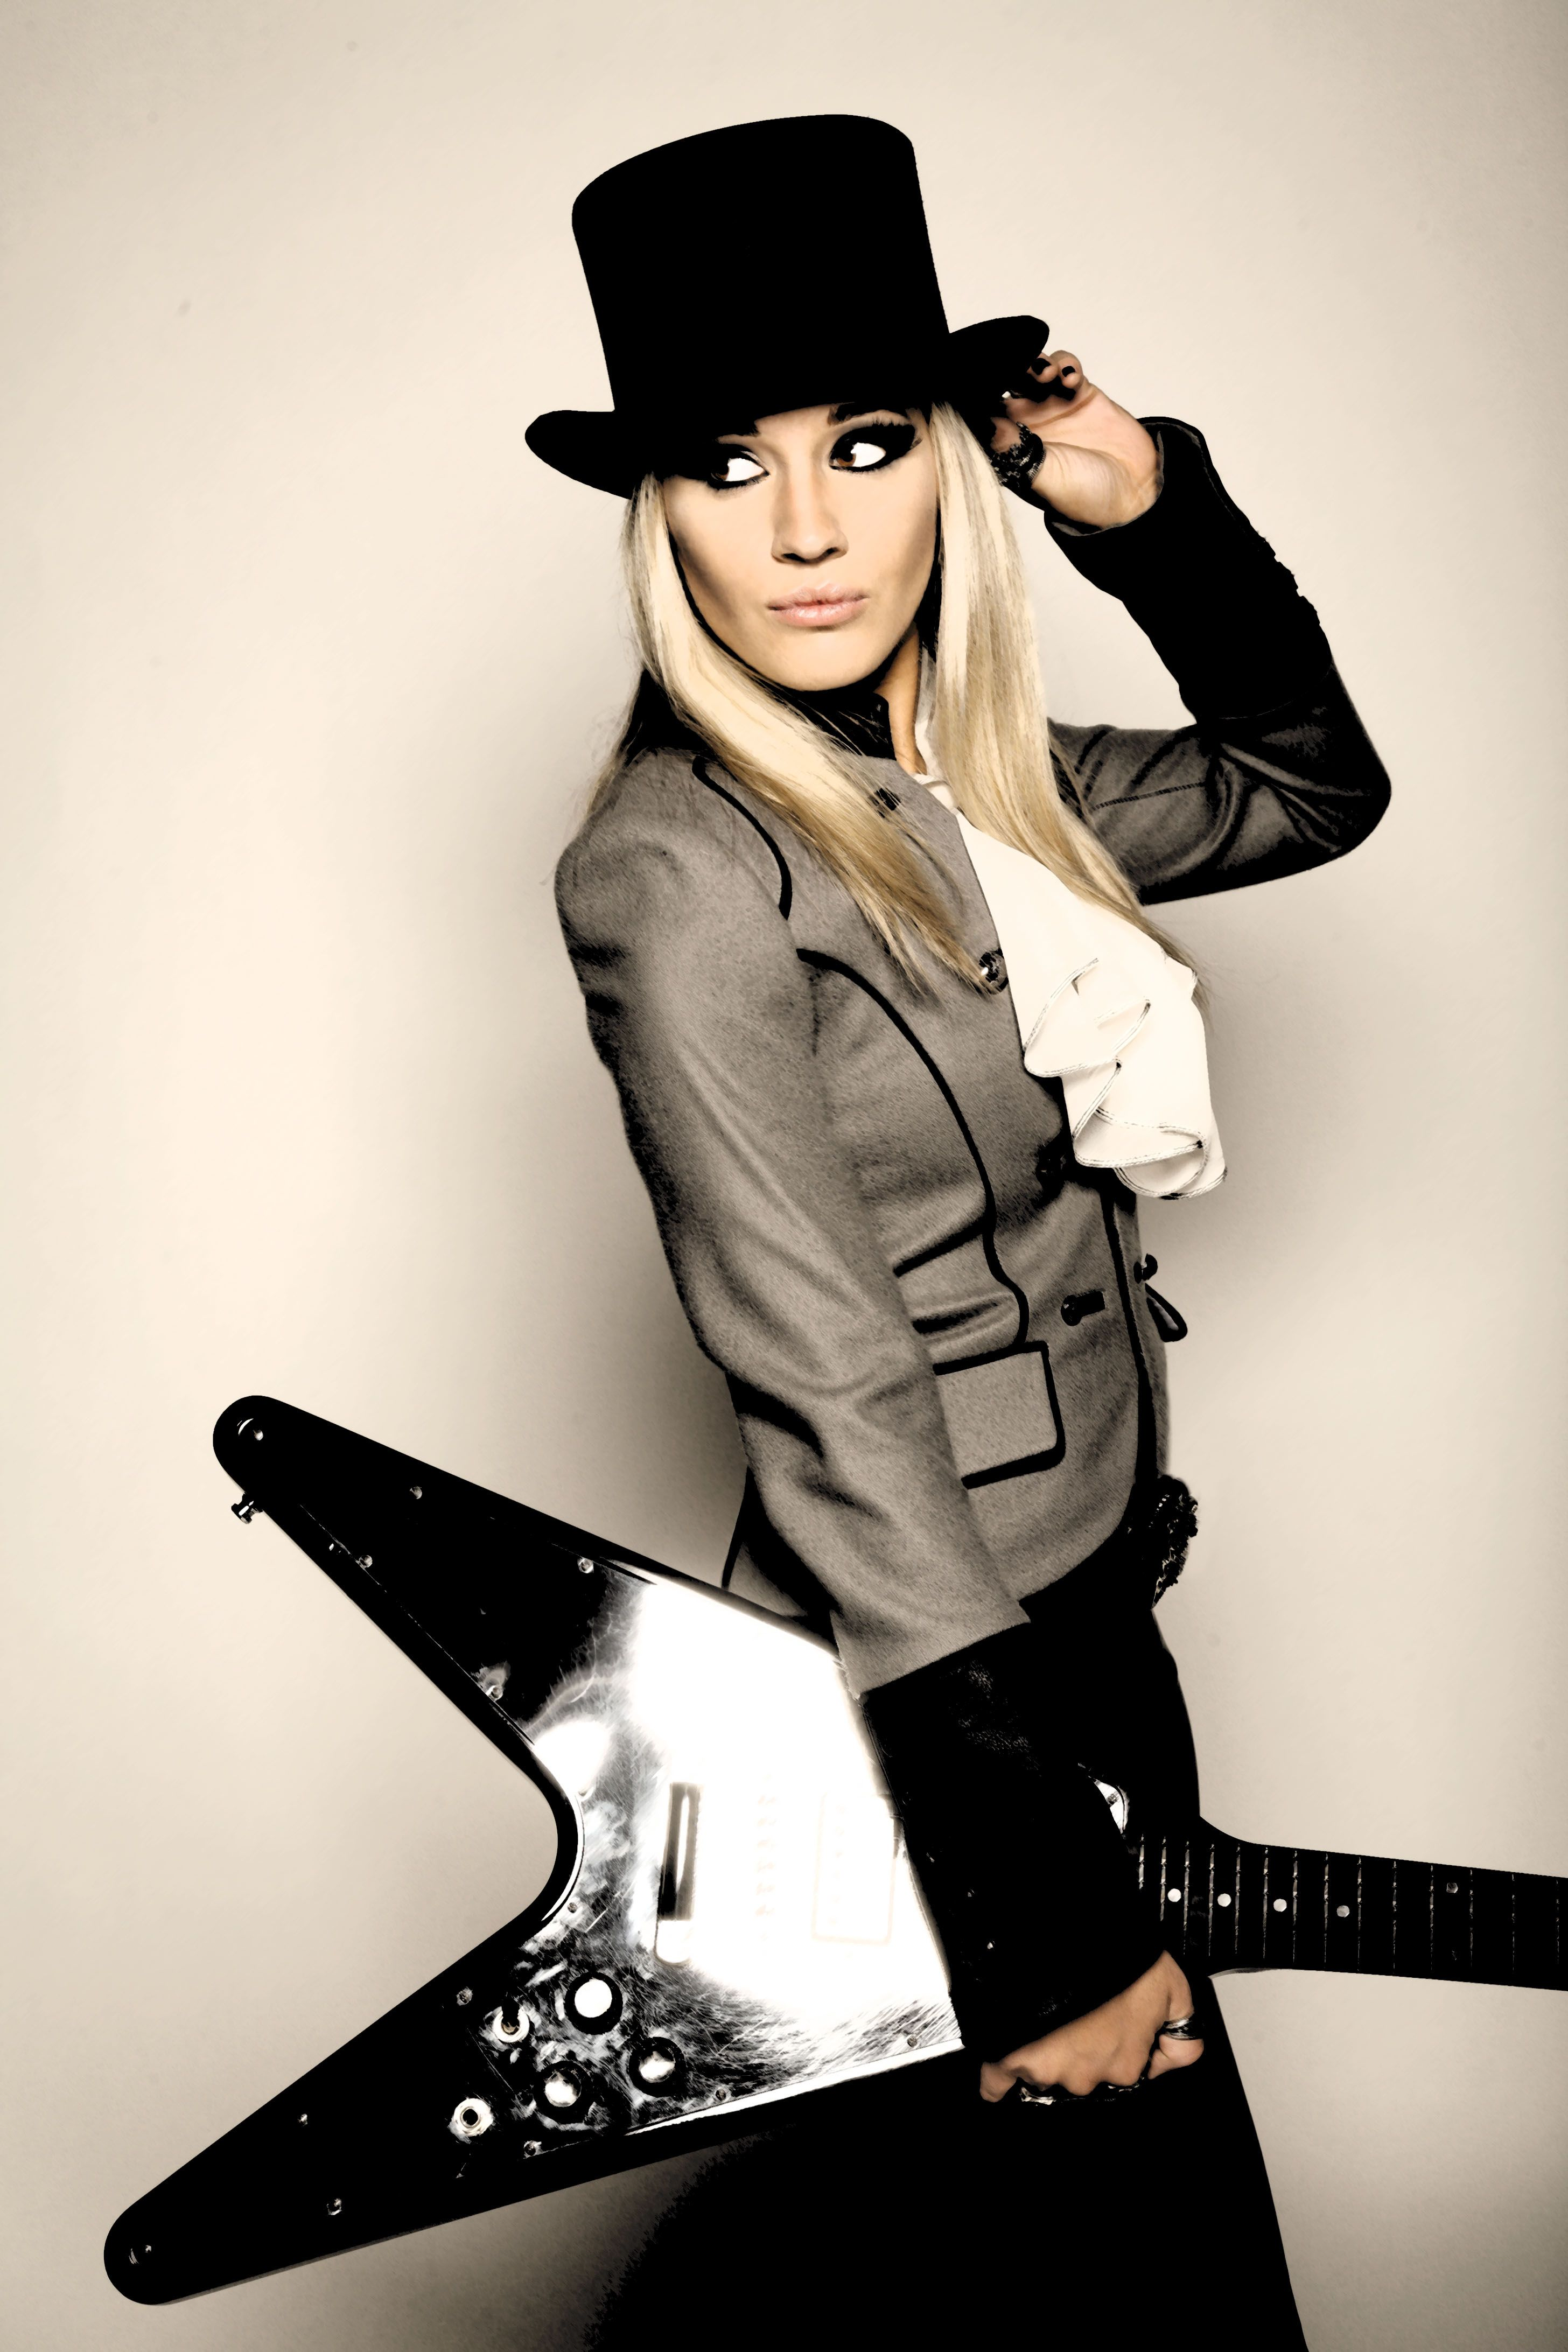 interview with laura wilde interviews of women in music guitar girl female guitarist. Black Bedroom Furniture Sets. Home Design Ideas